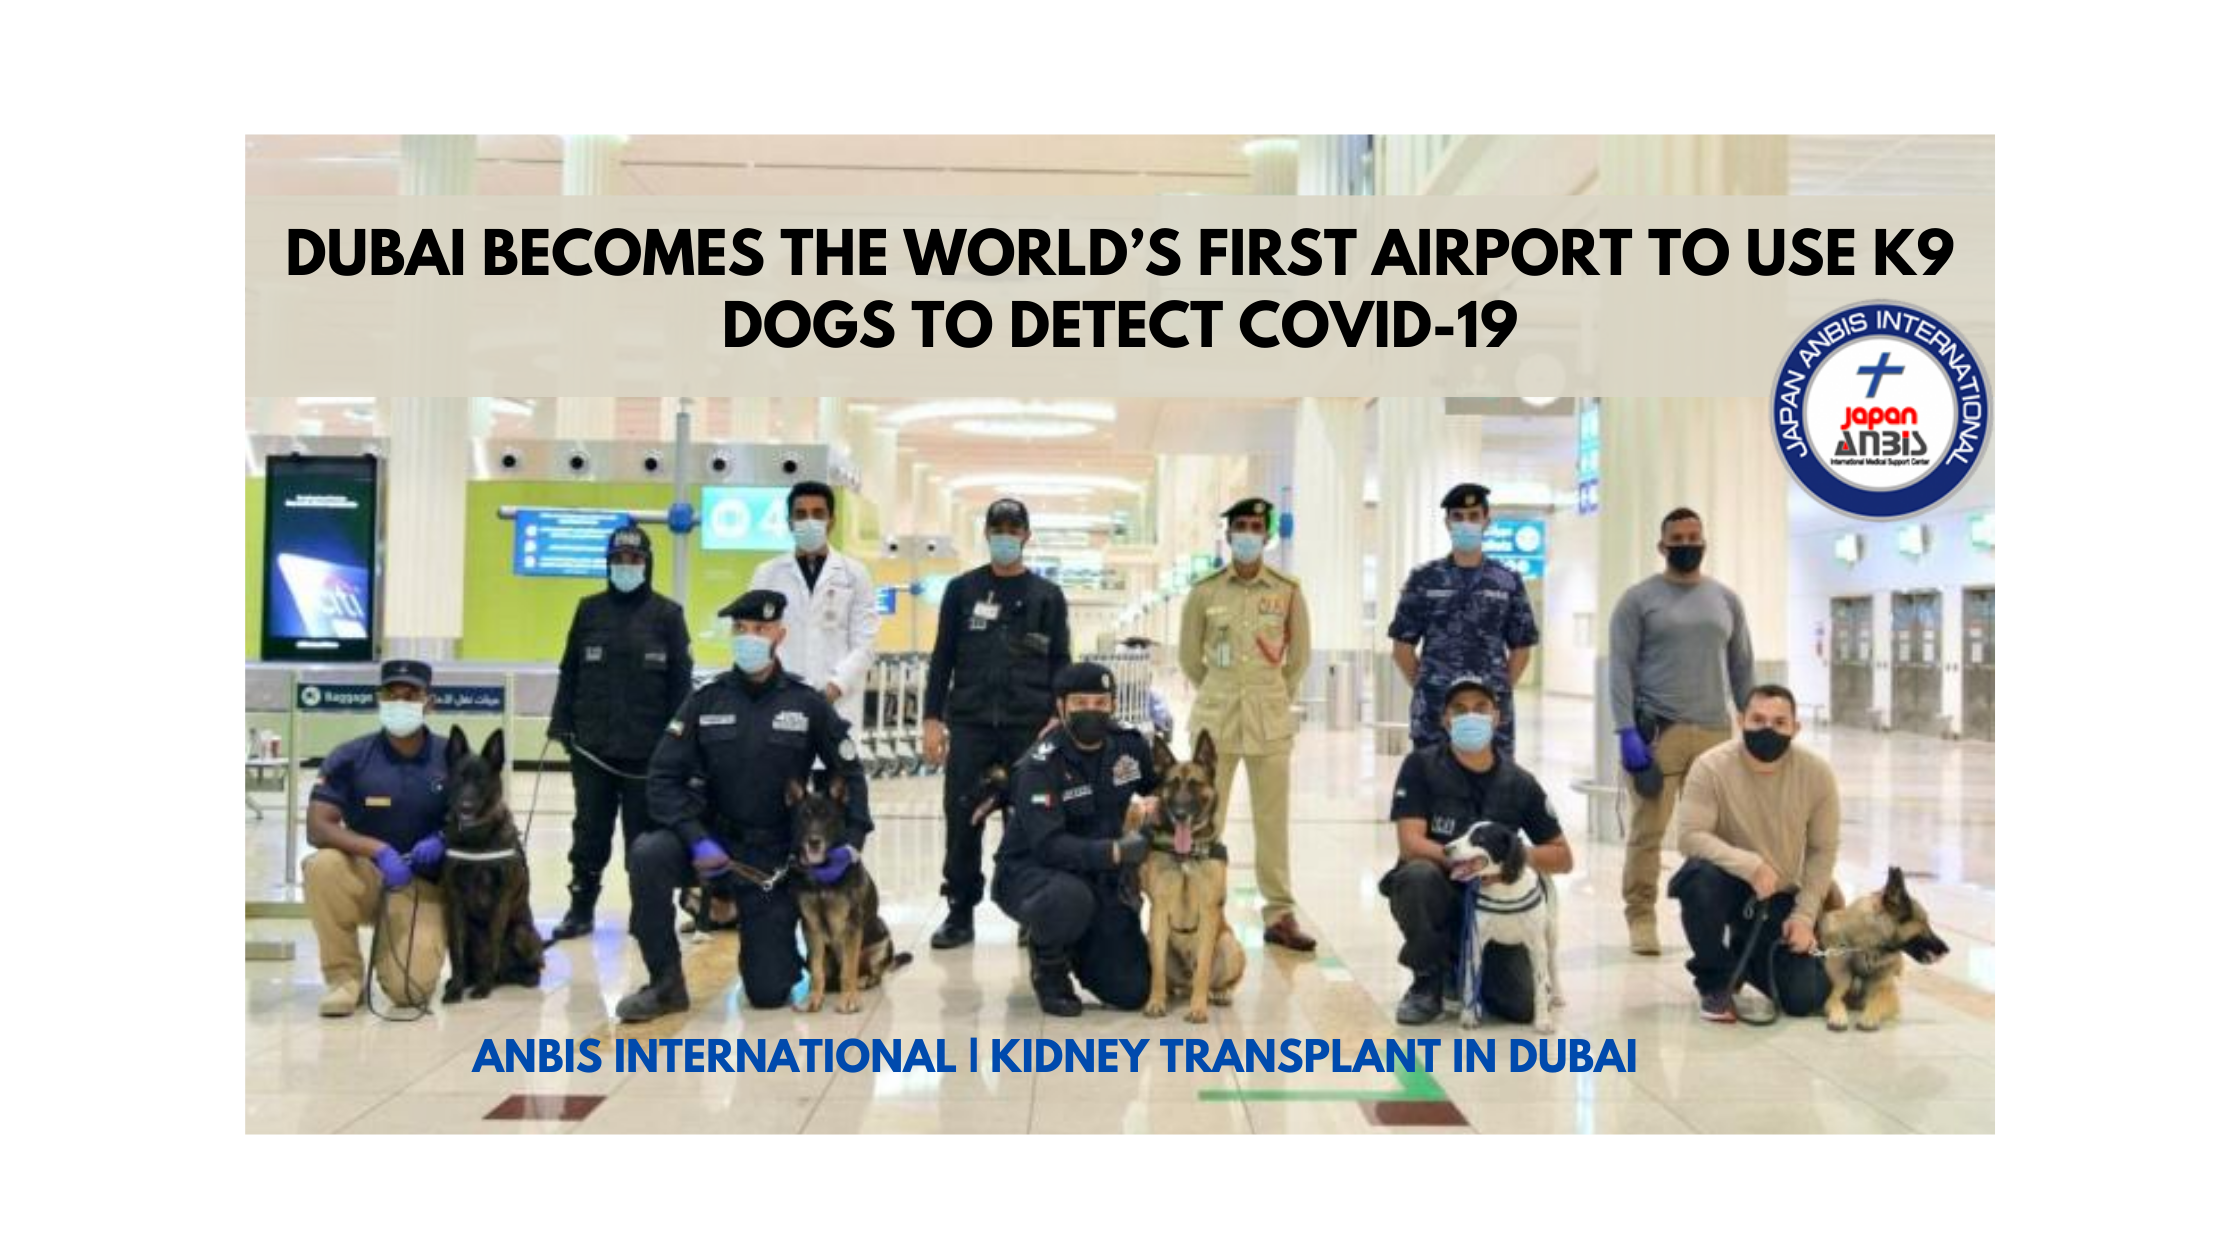 Dubai becomes the World's first airport to use K9 dogs to detect COVID-19 | ANBIS International